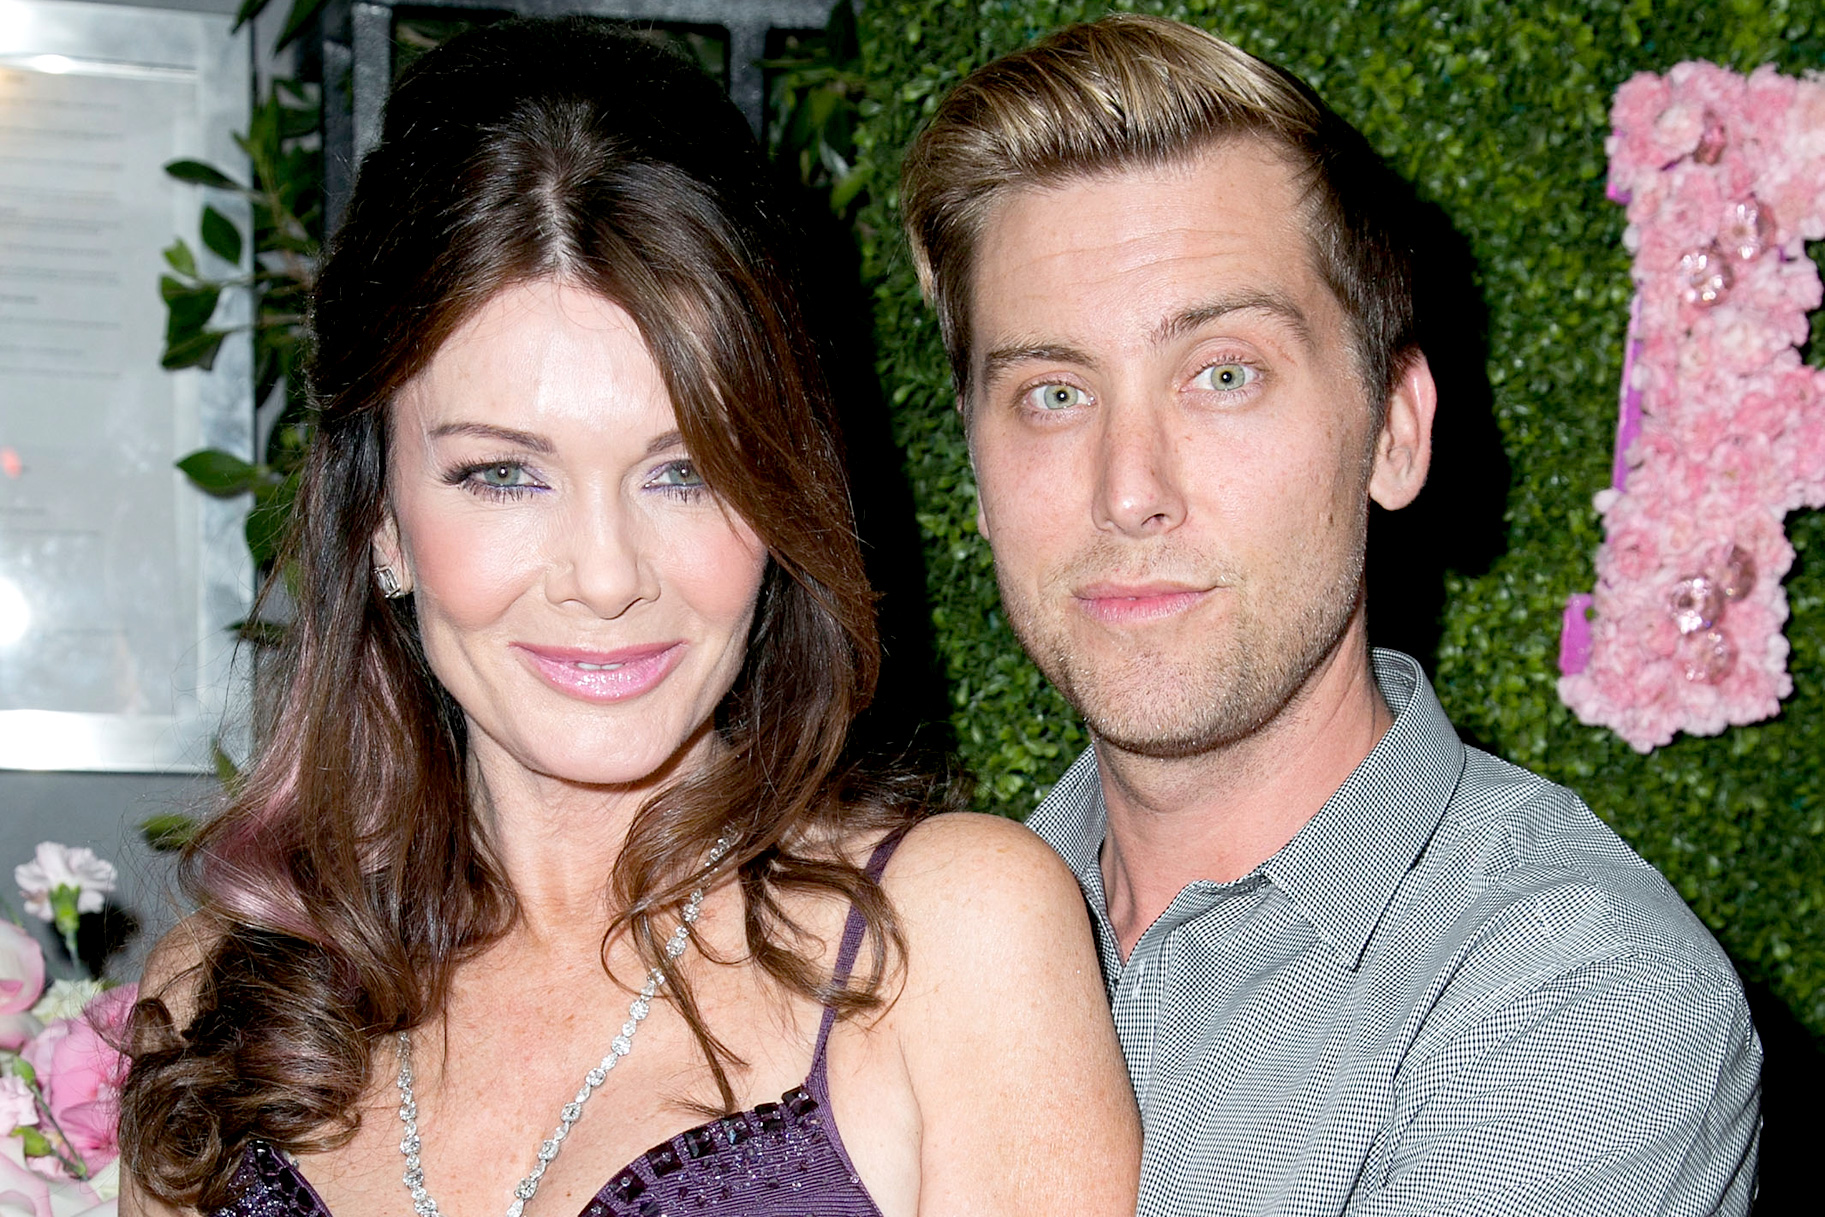 lance-bass-thinks-lisa-vanderpump-should-take-a-break-from-rhobh